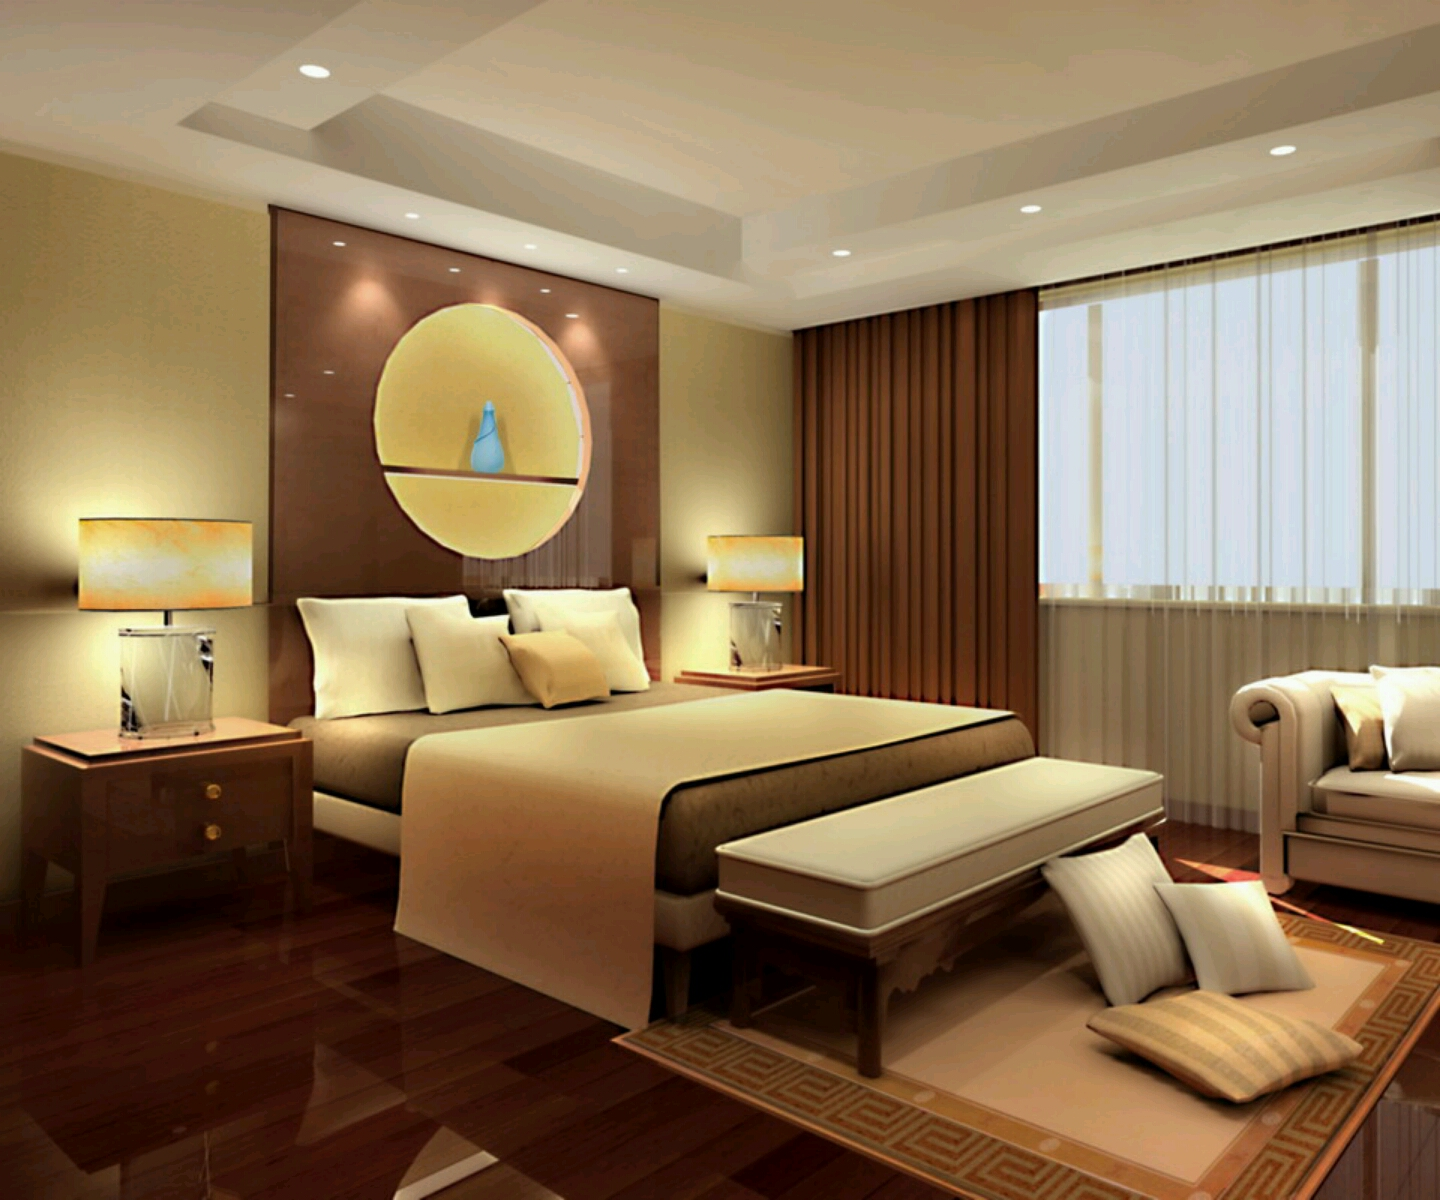 New home designs latest modern beautiful bedrooms interior decoration designs - Interior decoration for bedroom ...